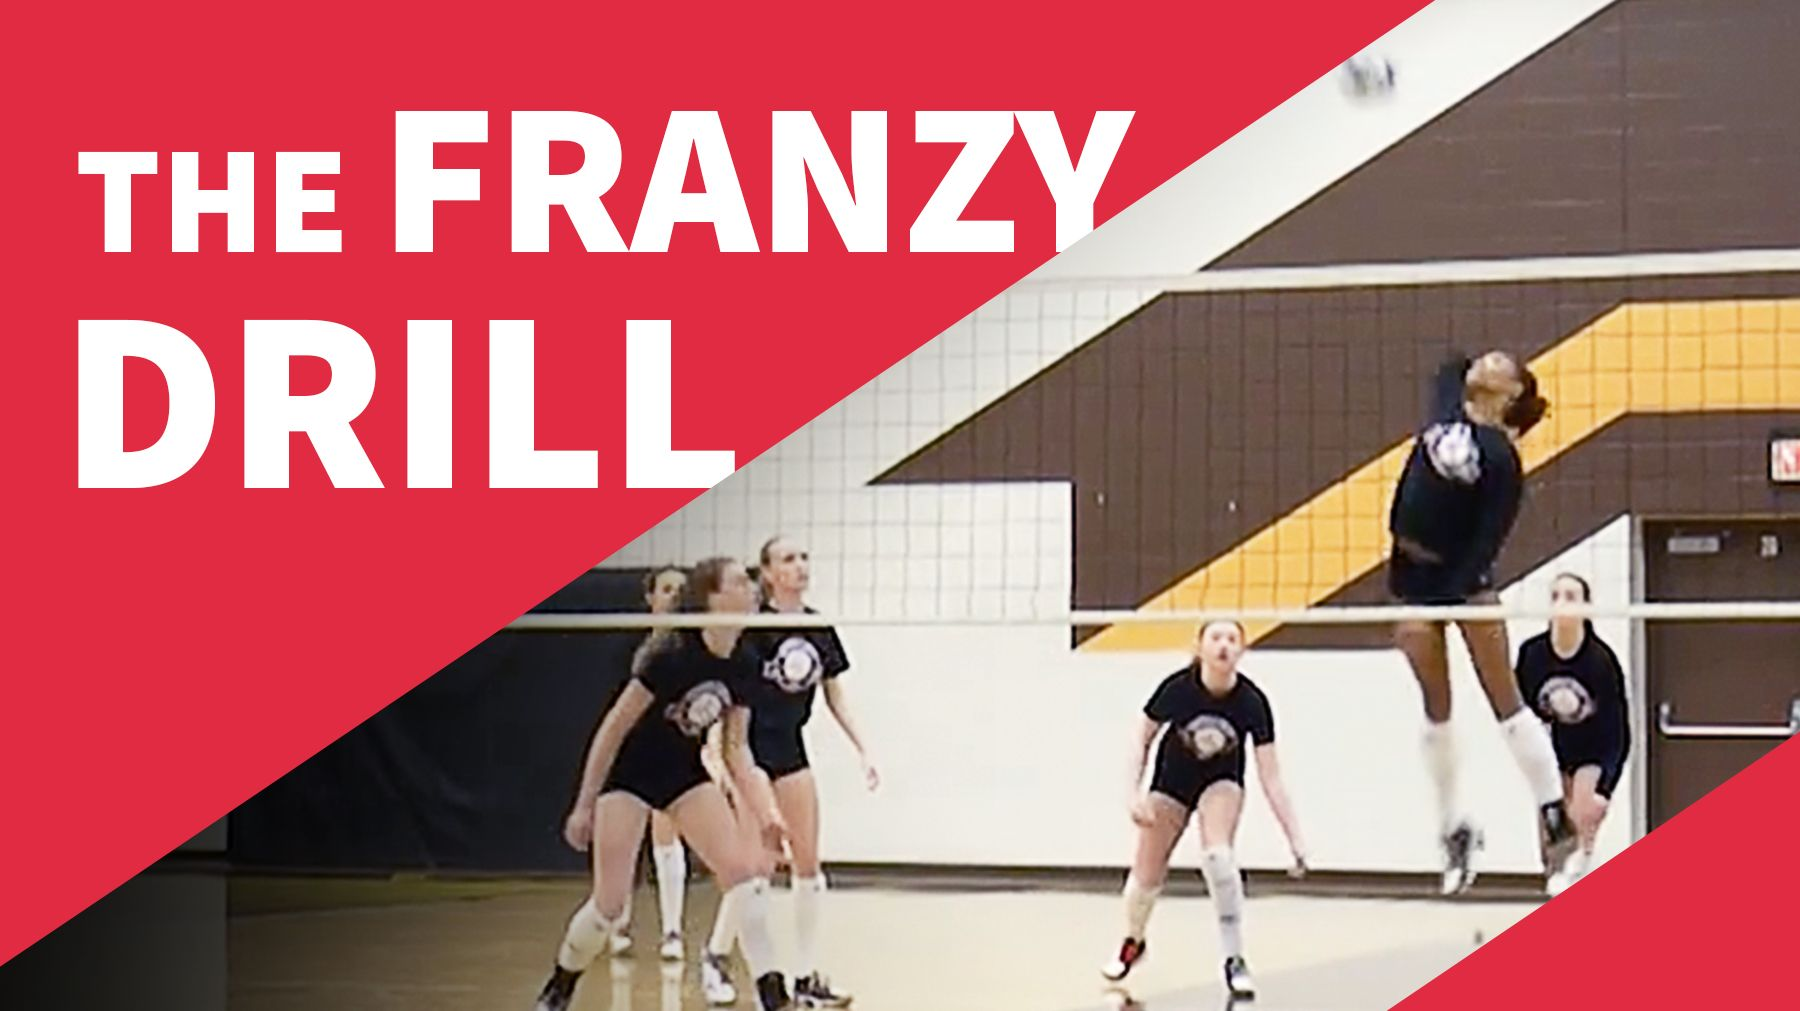 Franz Boelter The Franzy Drill The Art Of Coaching Volleyball Coaching Volleyball Volleyball Drills Volleyball Tryouts